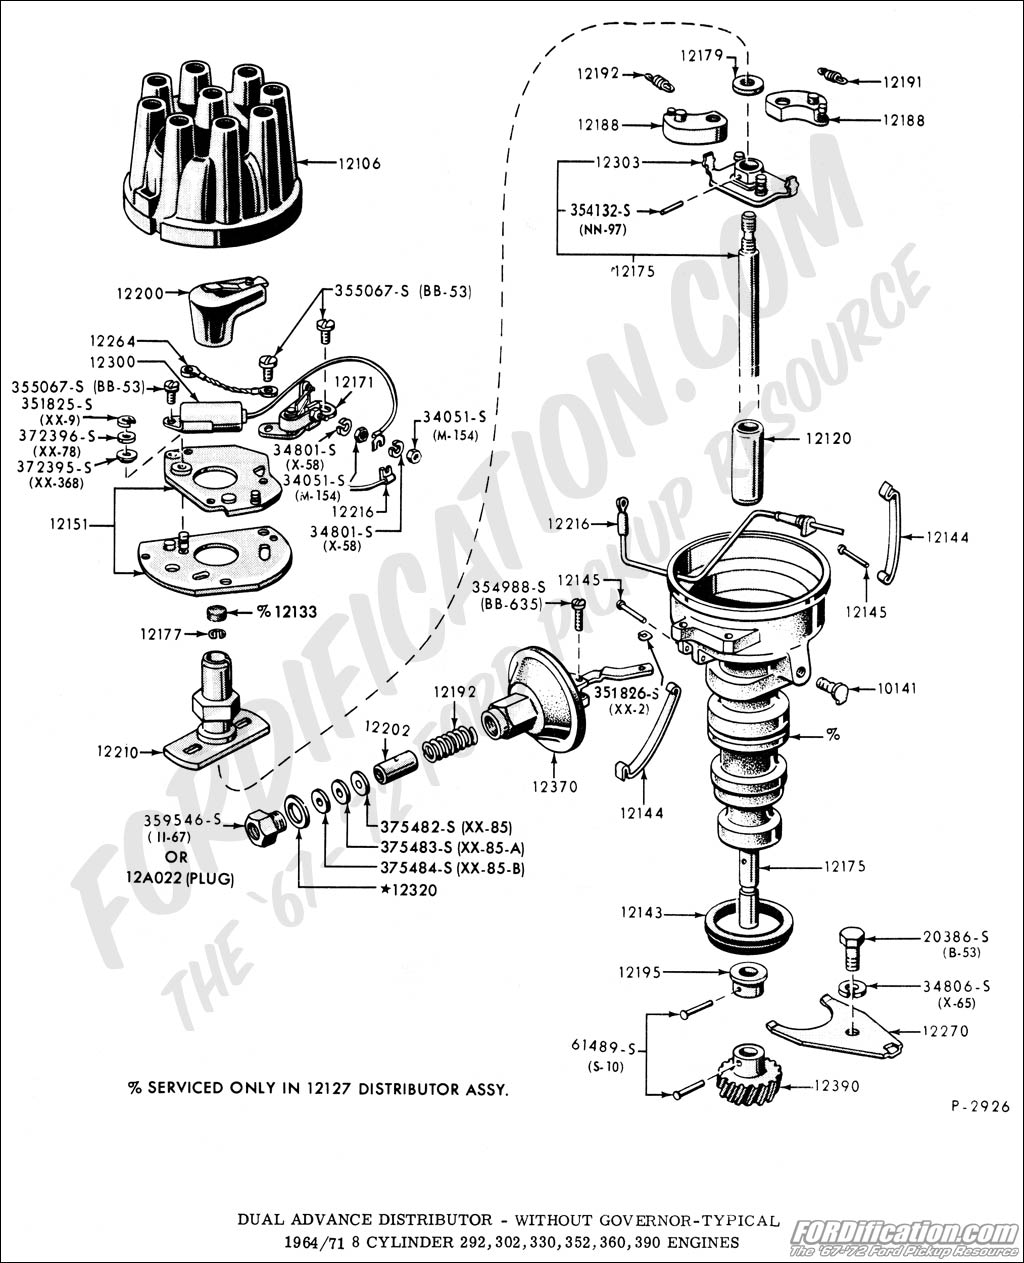 1d60y 1995 F150 Trying Install New Fuel Lines Front Tank besides 1995 S10 Fuse Box Diagram likewise Exploded View Results further 88 Fleetwood Wiring Diagram as well 1321136 86 F 150 Eec Power Relay. on ford e 350 ignition wiring diagrams